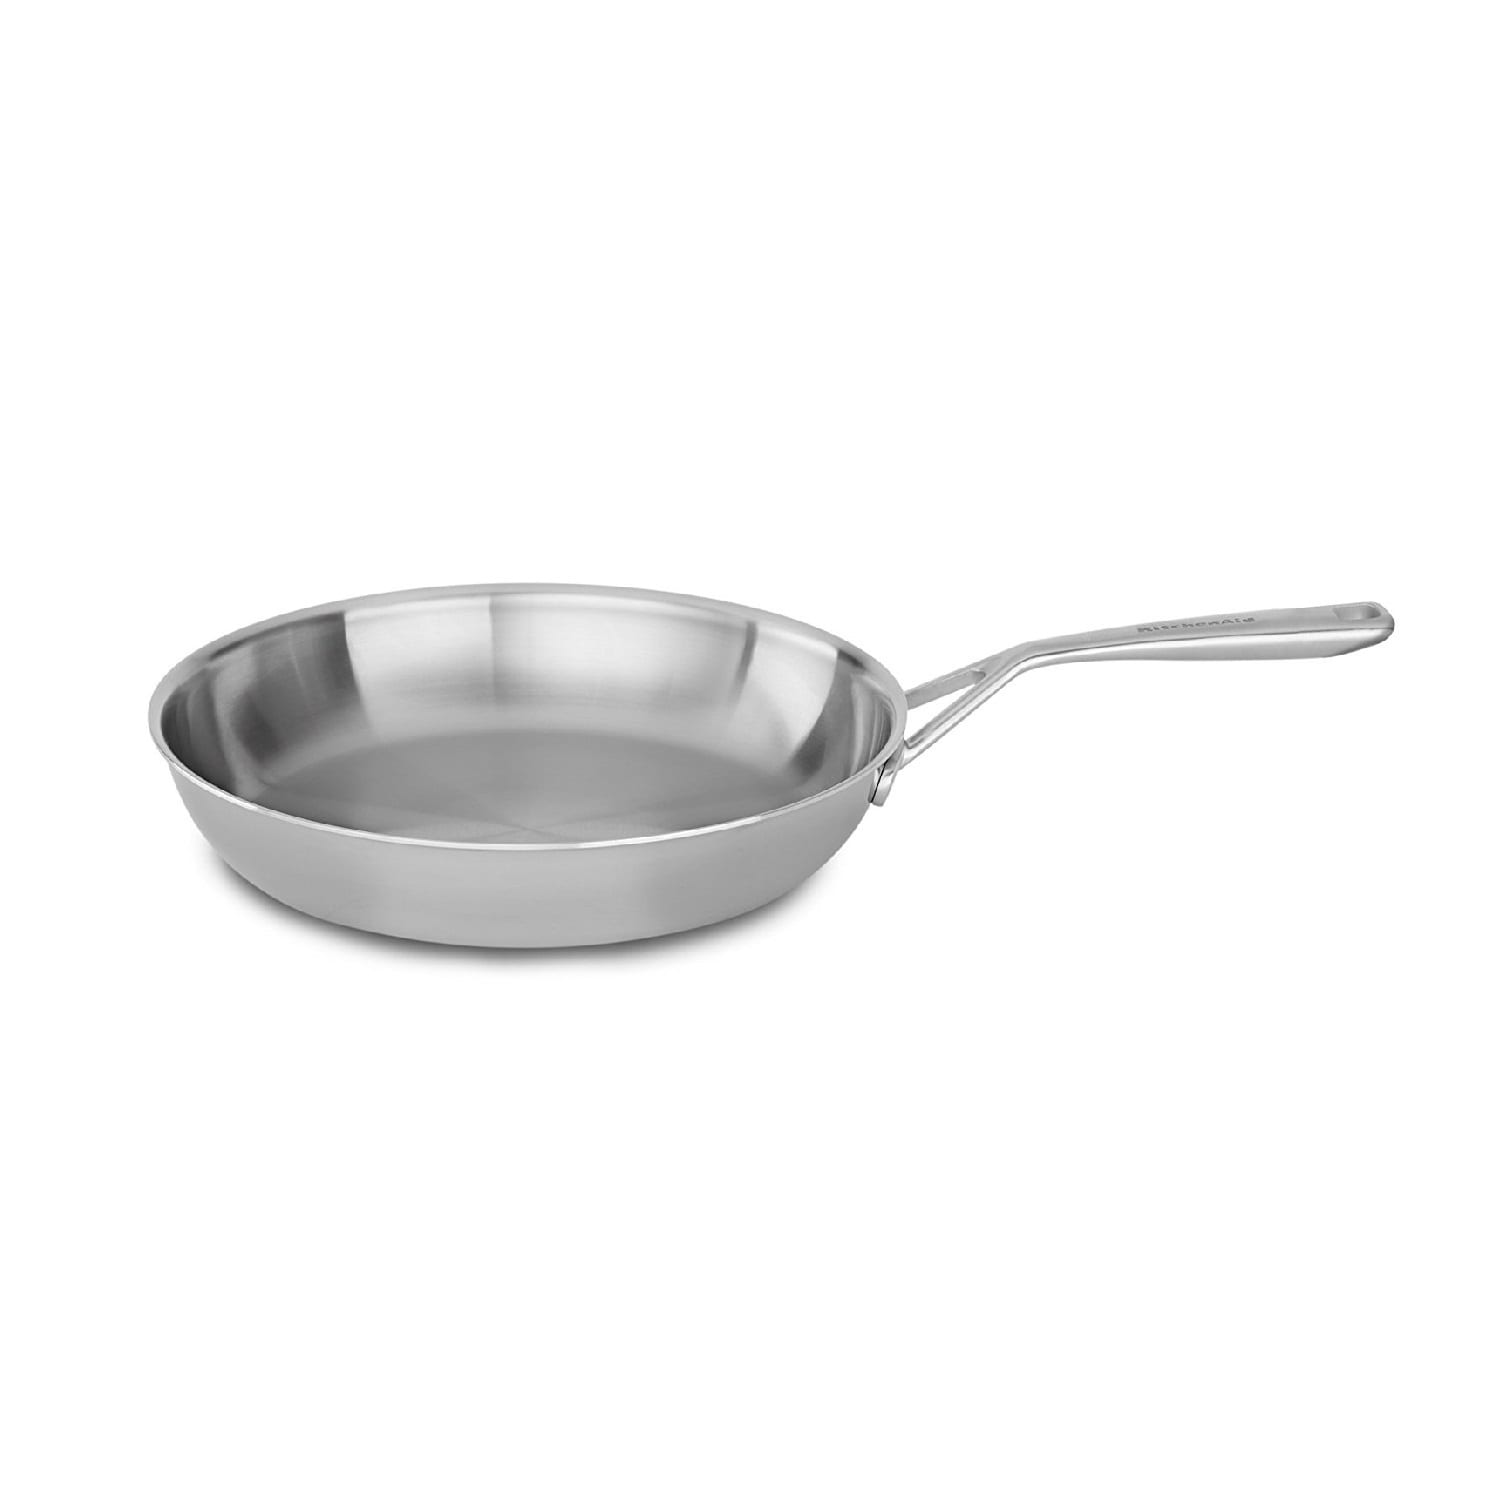 KitchenAid 12 Tri-Ply Stainless Steel Non-Stick Skillet | eBay on rachael ray pots and pans, hello kitty pots and pans, big lots pots and pans, pink kitchen pots and pans, cuisinart pots and pans, meijer pots and pans, macy's kitchen pots and pans, paula deen pots and pans, pink play pots and pans, kitchenaid gourmet essentials brushed stainless, forever quality pots and pans,